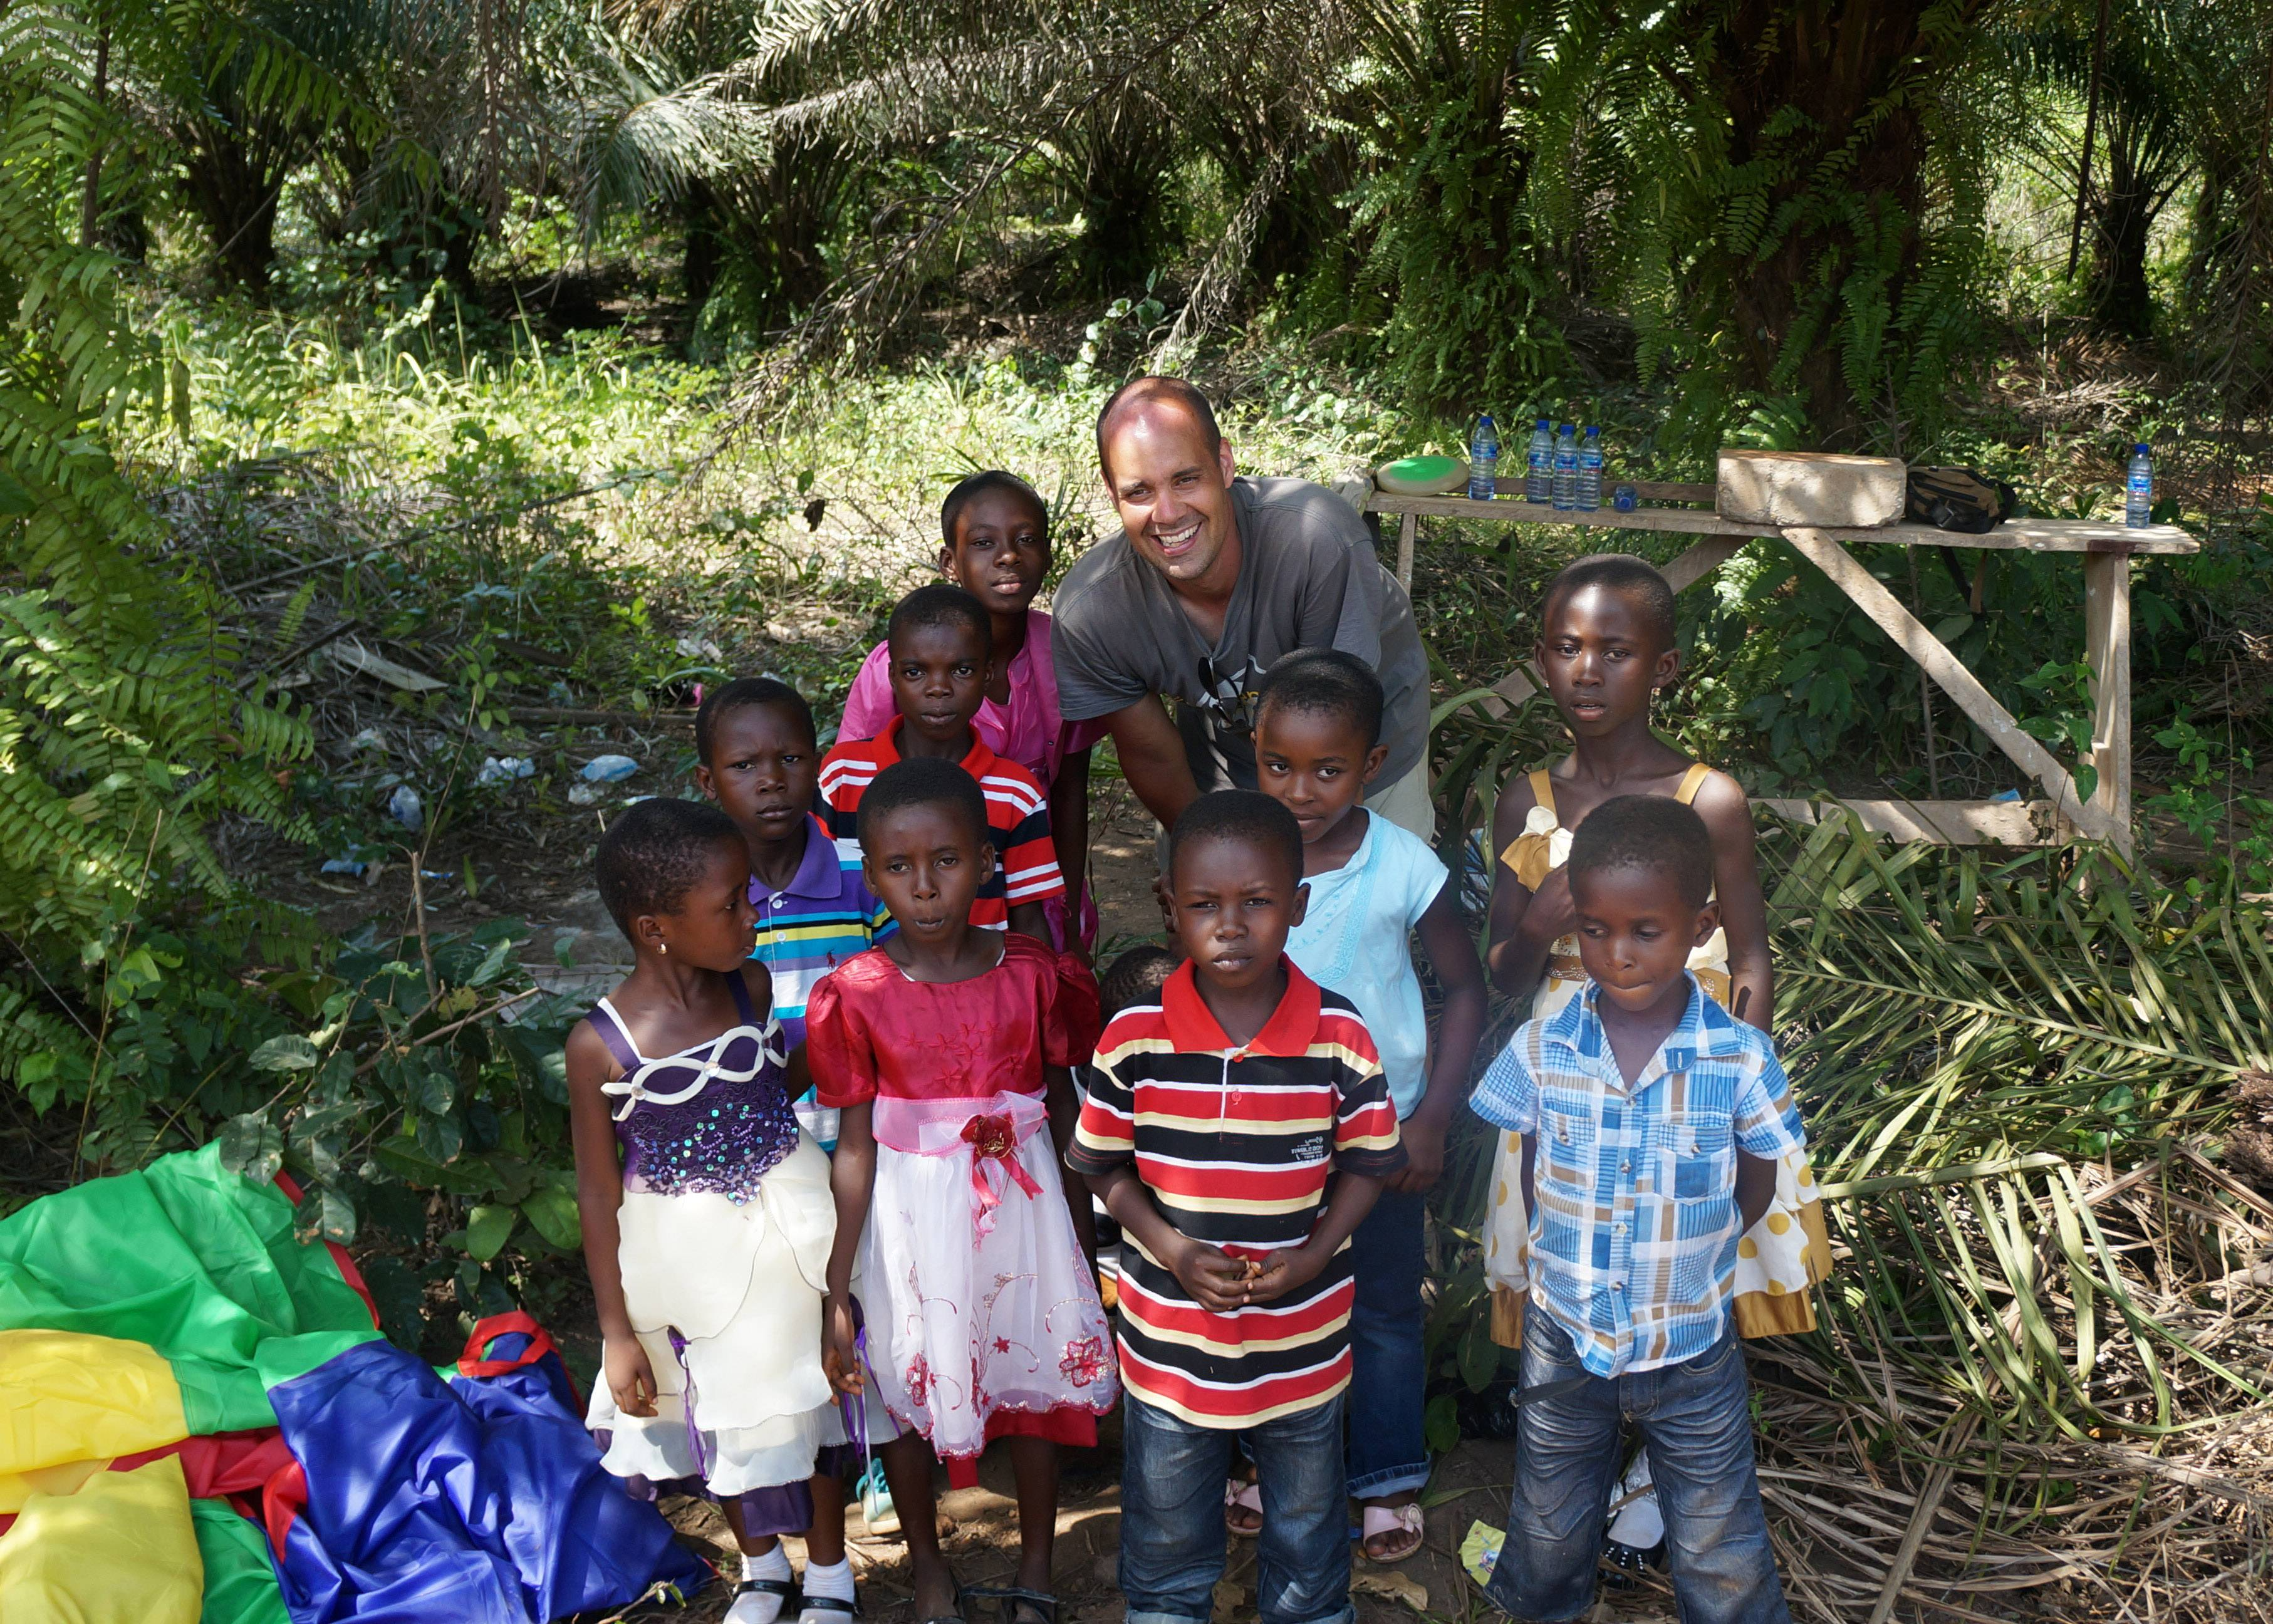 James Reed is pictured with children of the Love and Care Foundation Orphanage in March 2014.